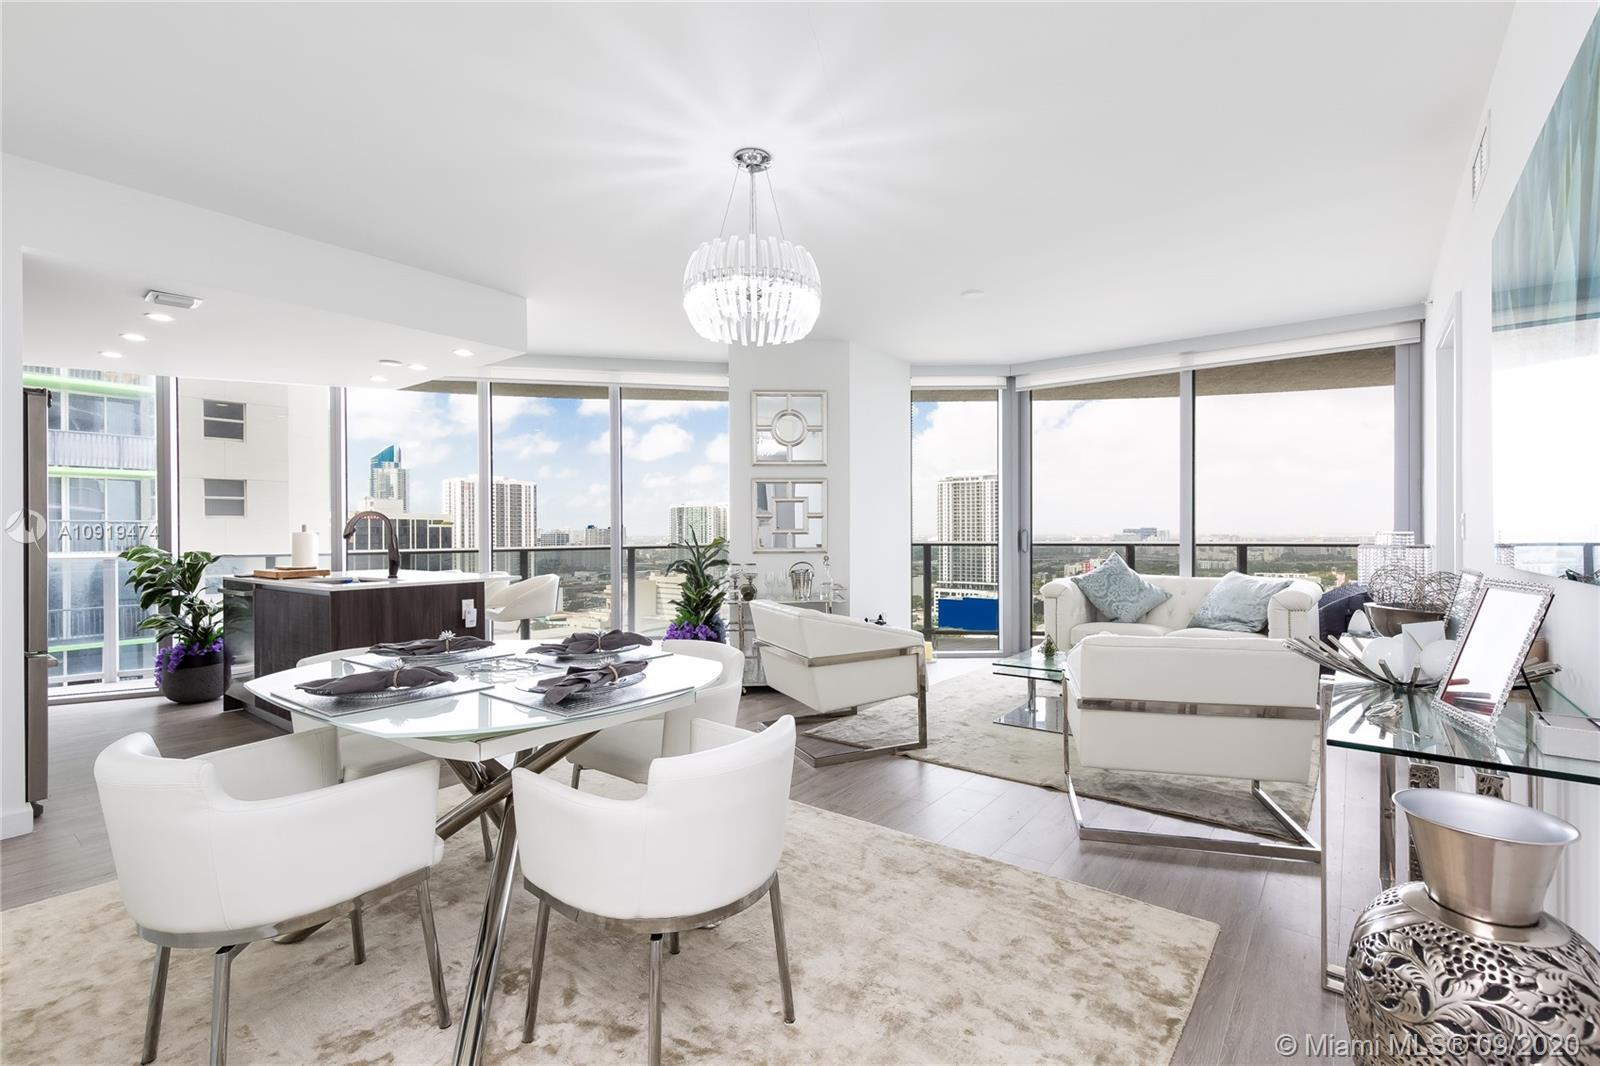 Contemporary & Bright fully furnished, move-in ready 2 bed/2.5 bath residence with 270-degree open v